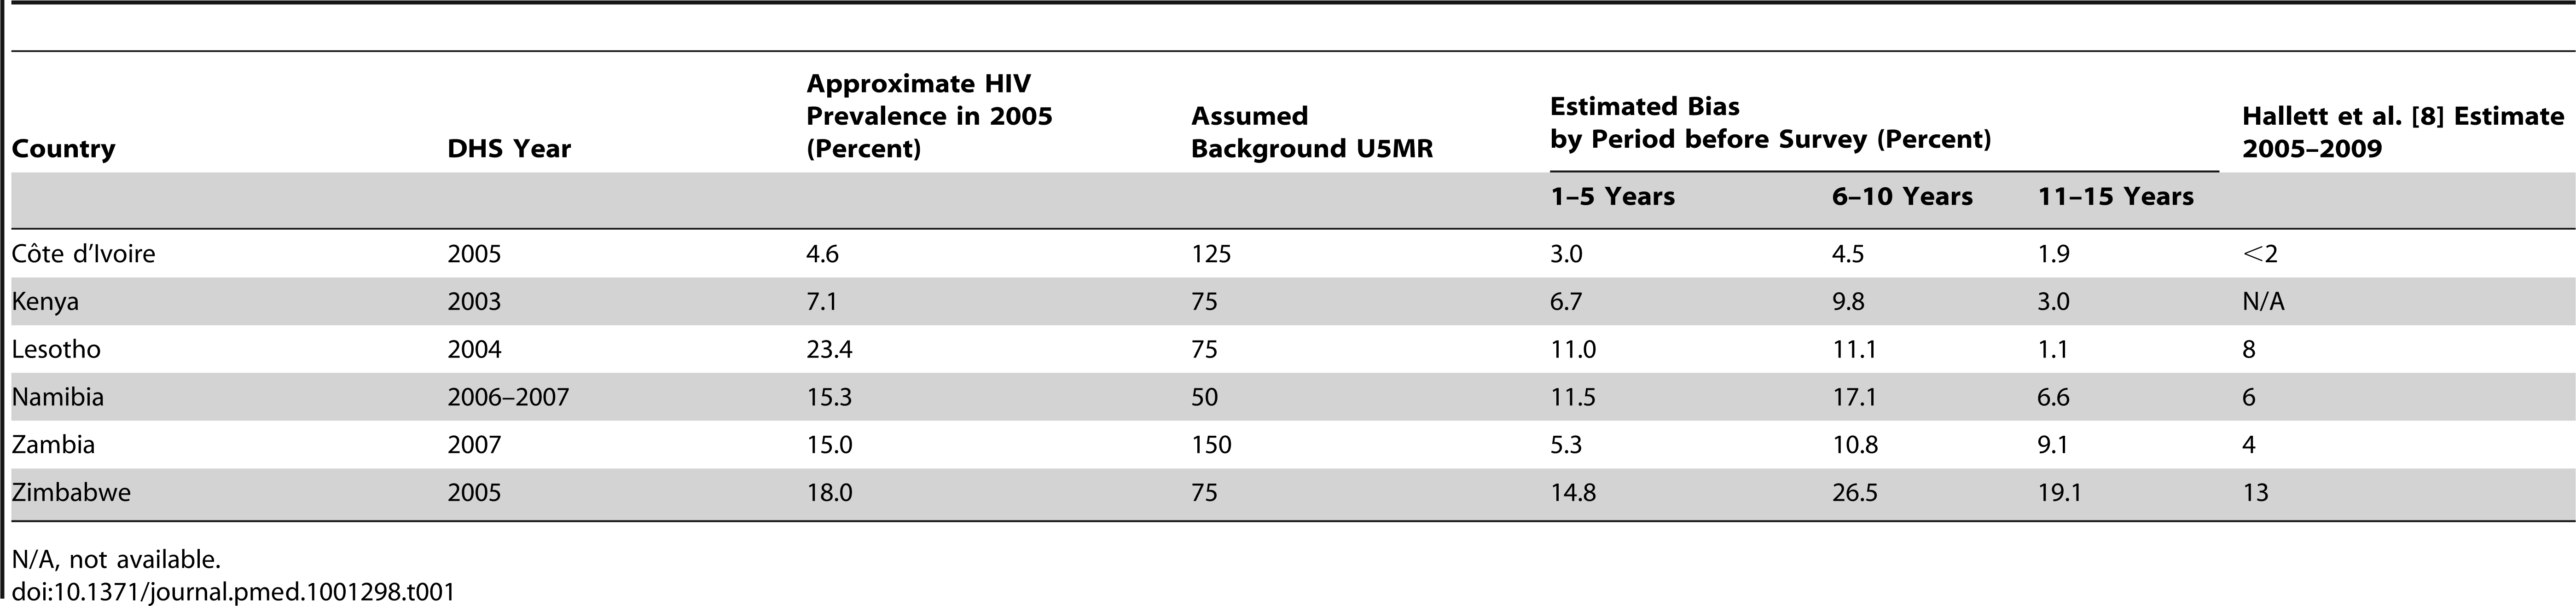 Estimates of bias for estimates of U5MR for periods 1–5, 6–10, and 11–15 years before each survey: selected sub-Saharan African countries.